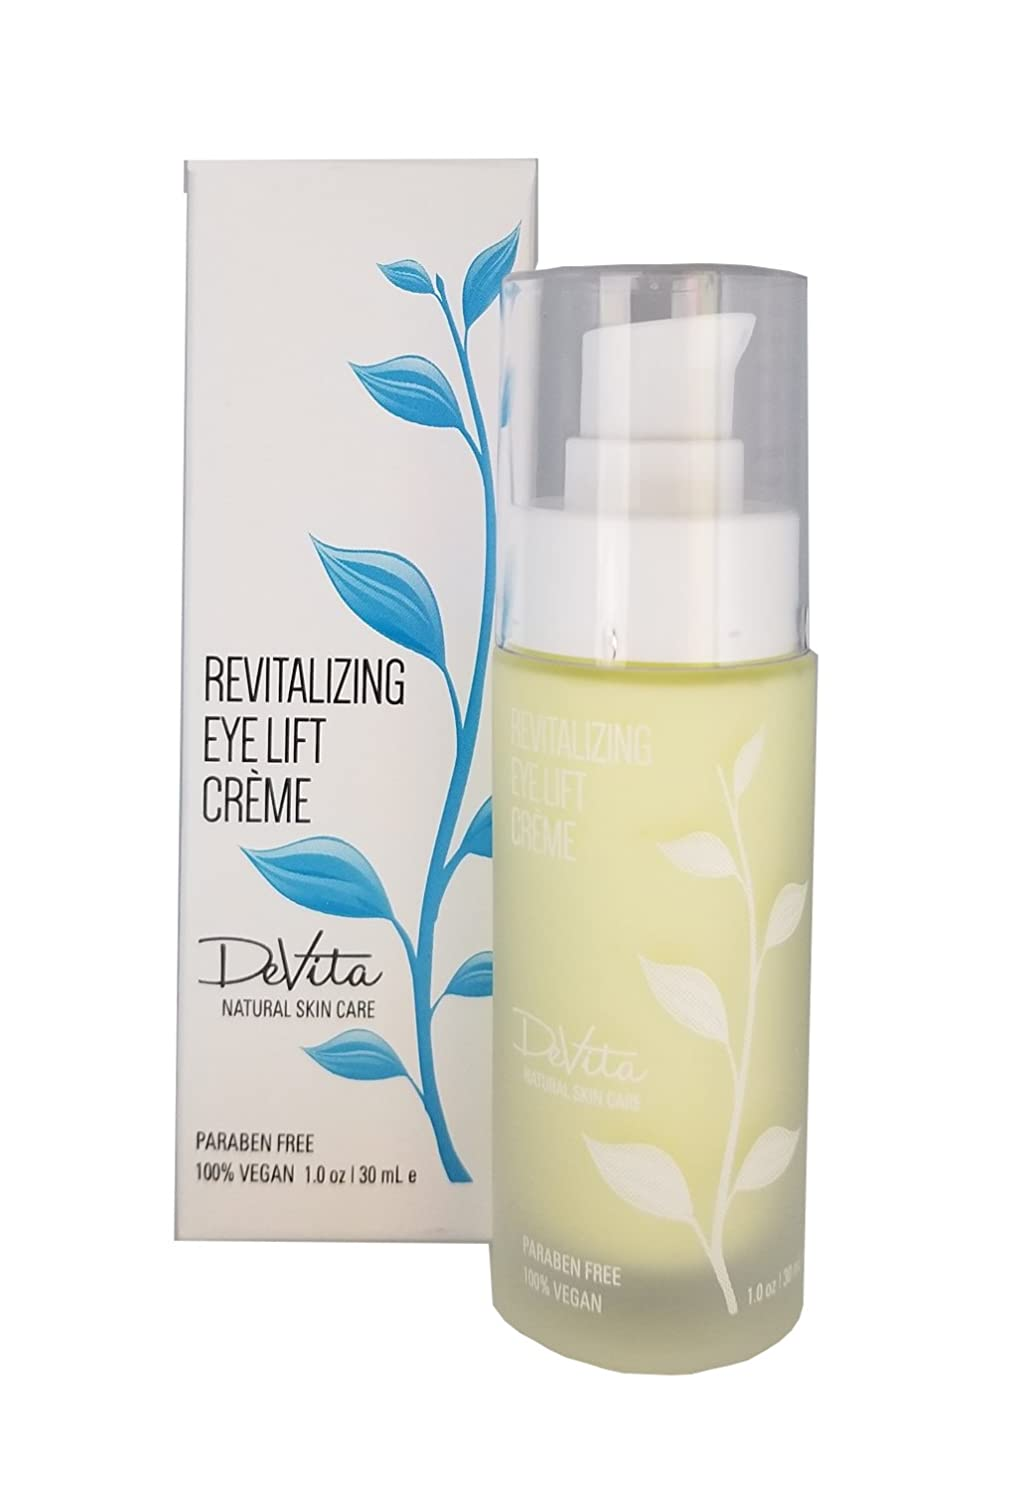 DeVita Revitalizing Eye Lift Cream - vegan eye serum treatment for wrinkles, made with aloe to help reduce puffiness, fine lines under and around eyes.